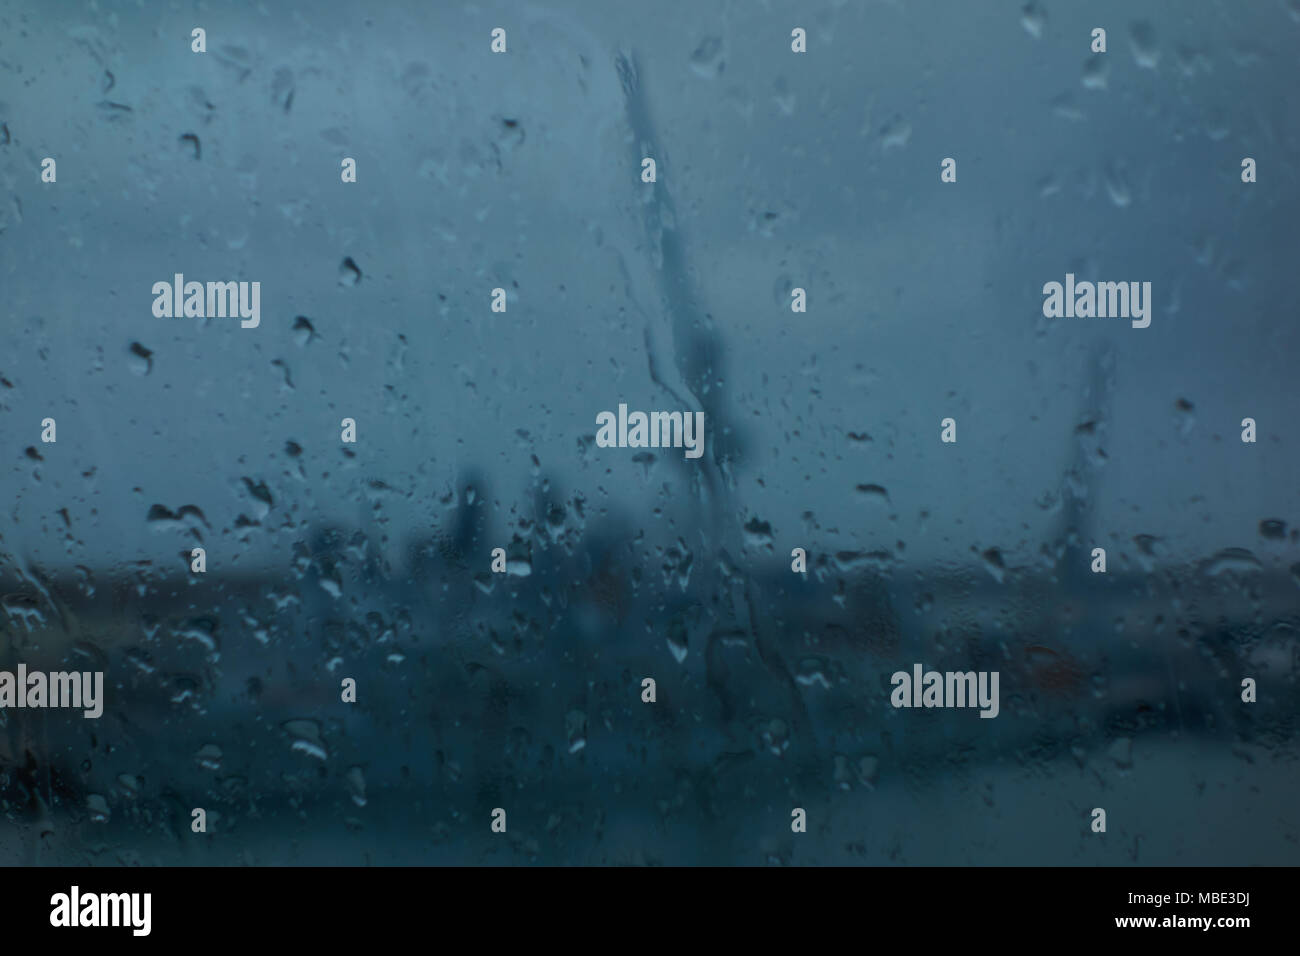 Rain on a window overlooking a harbour - Stock Image